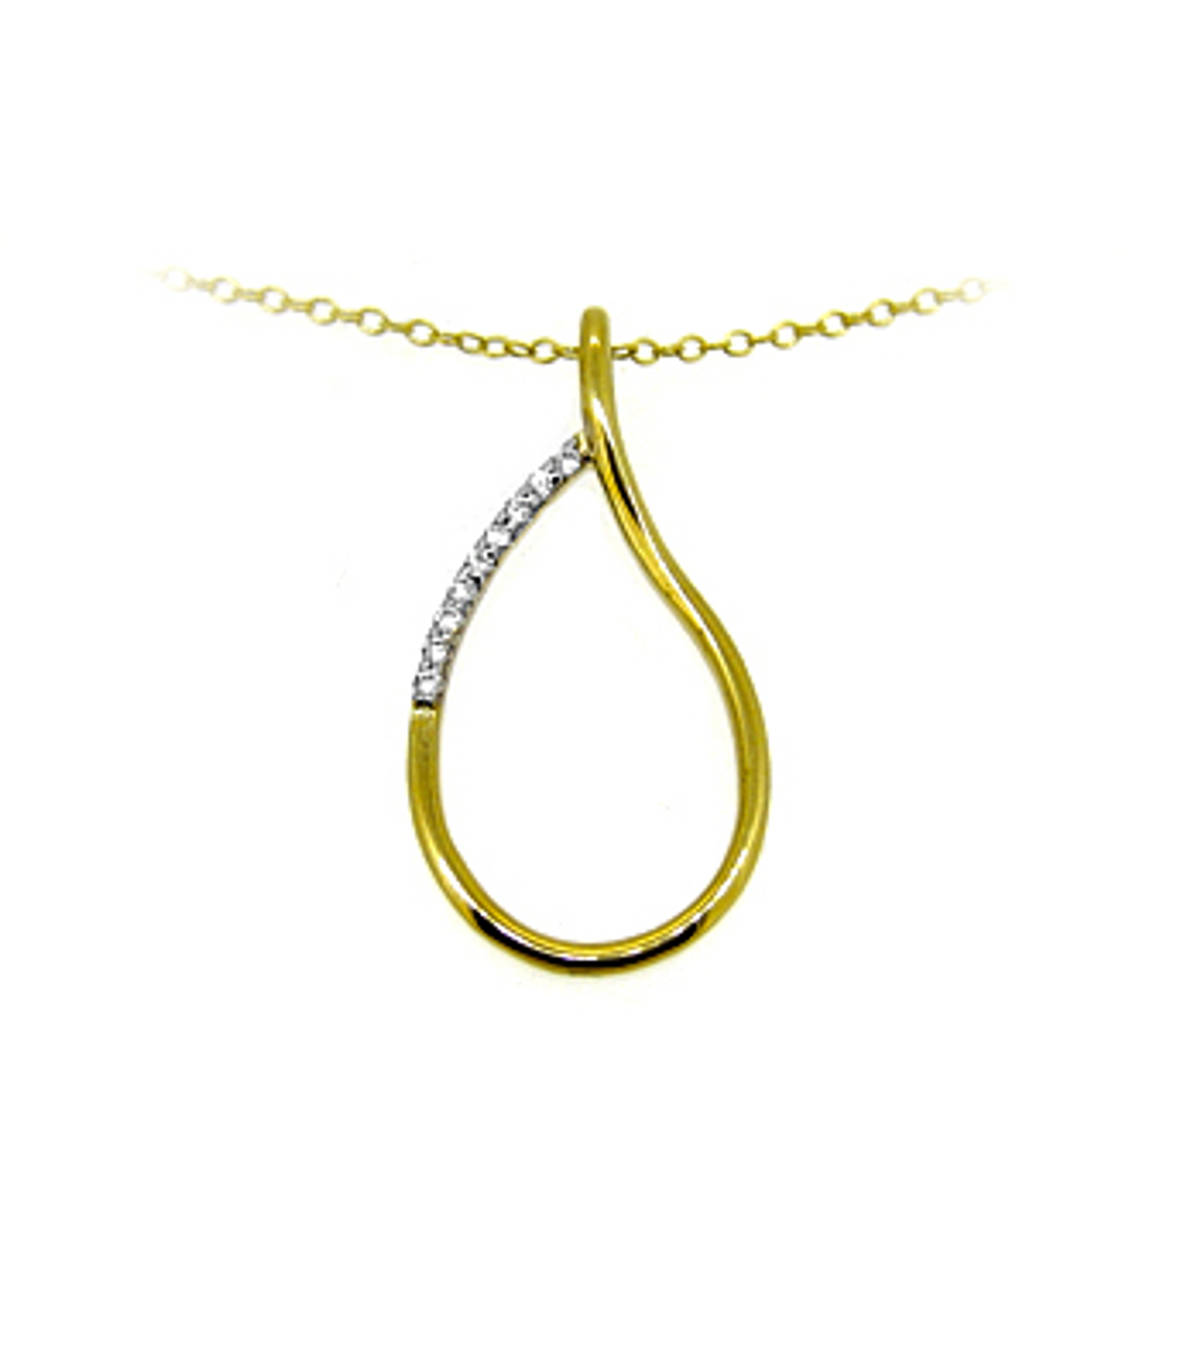 """9k yellow gold CZ loop pendant on 9k yellow gold 18"""" chainDETAILSMetal: 9k yellow gold9k yellow gold 18"""" chain SIZE & FITLength  3cmWidth  1.4cm Made in the Ireland"""